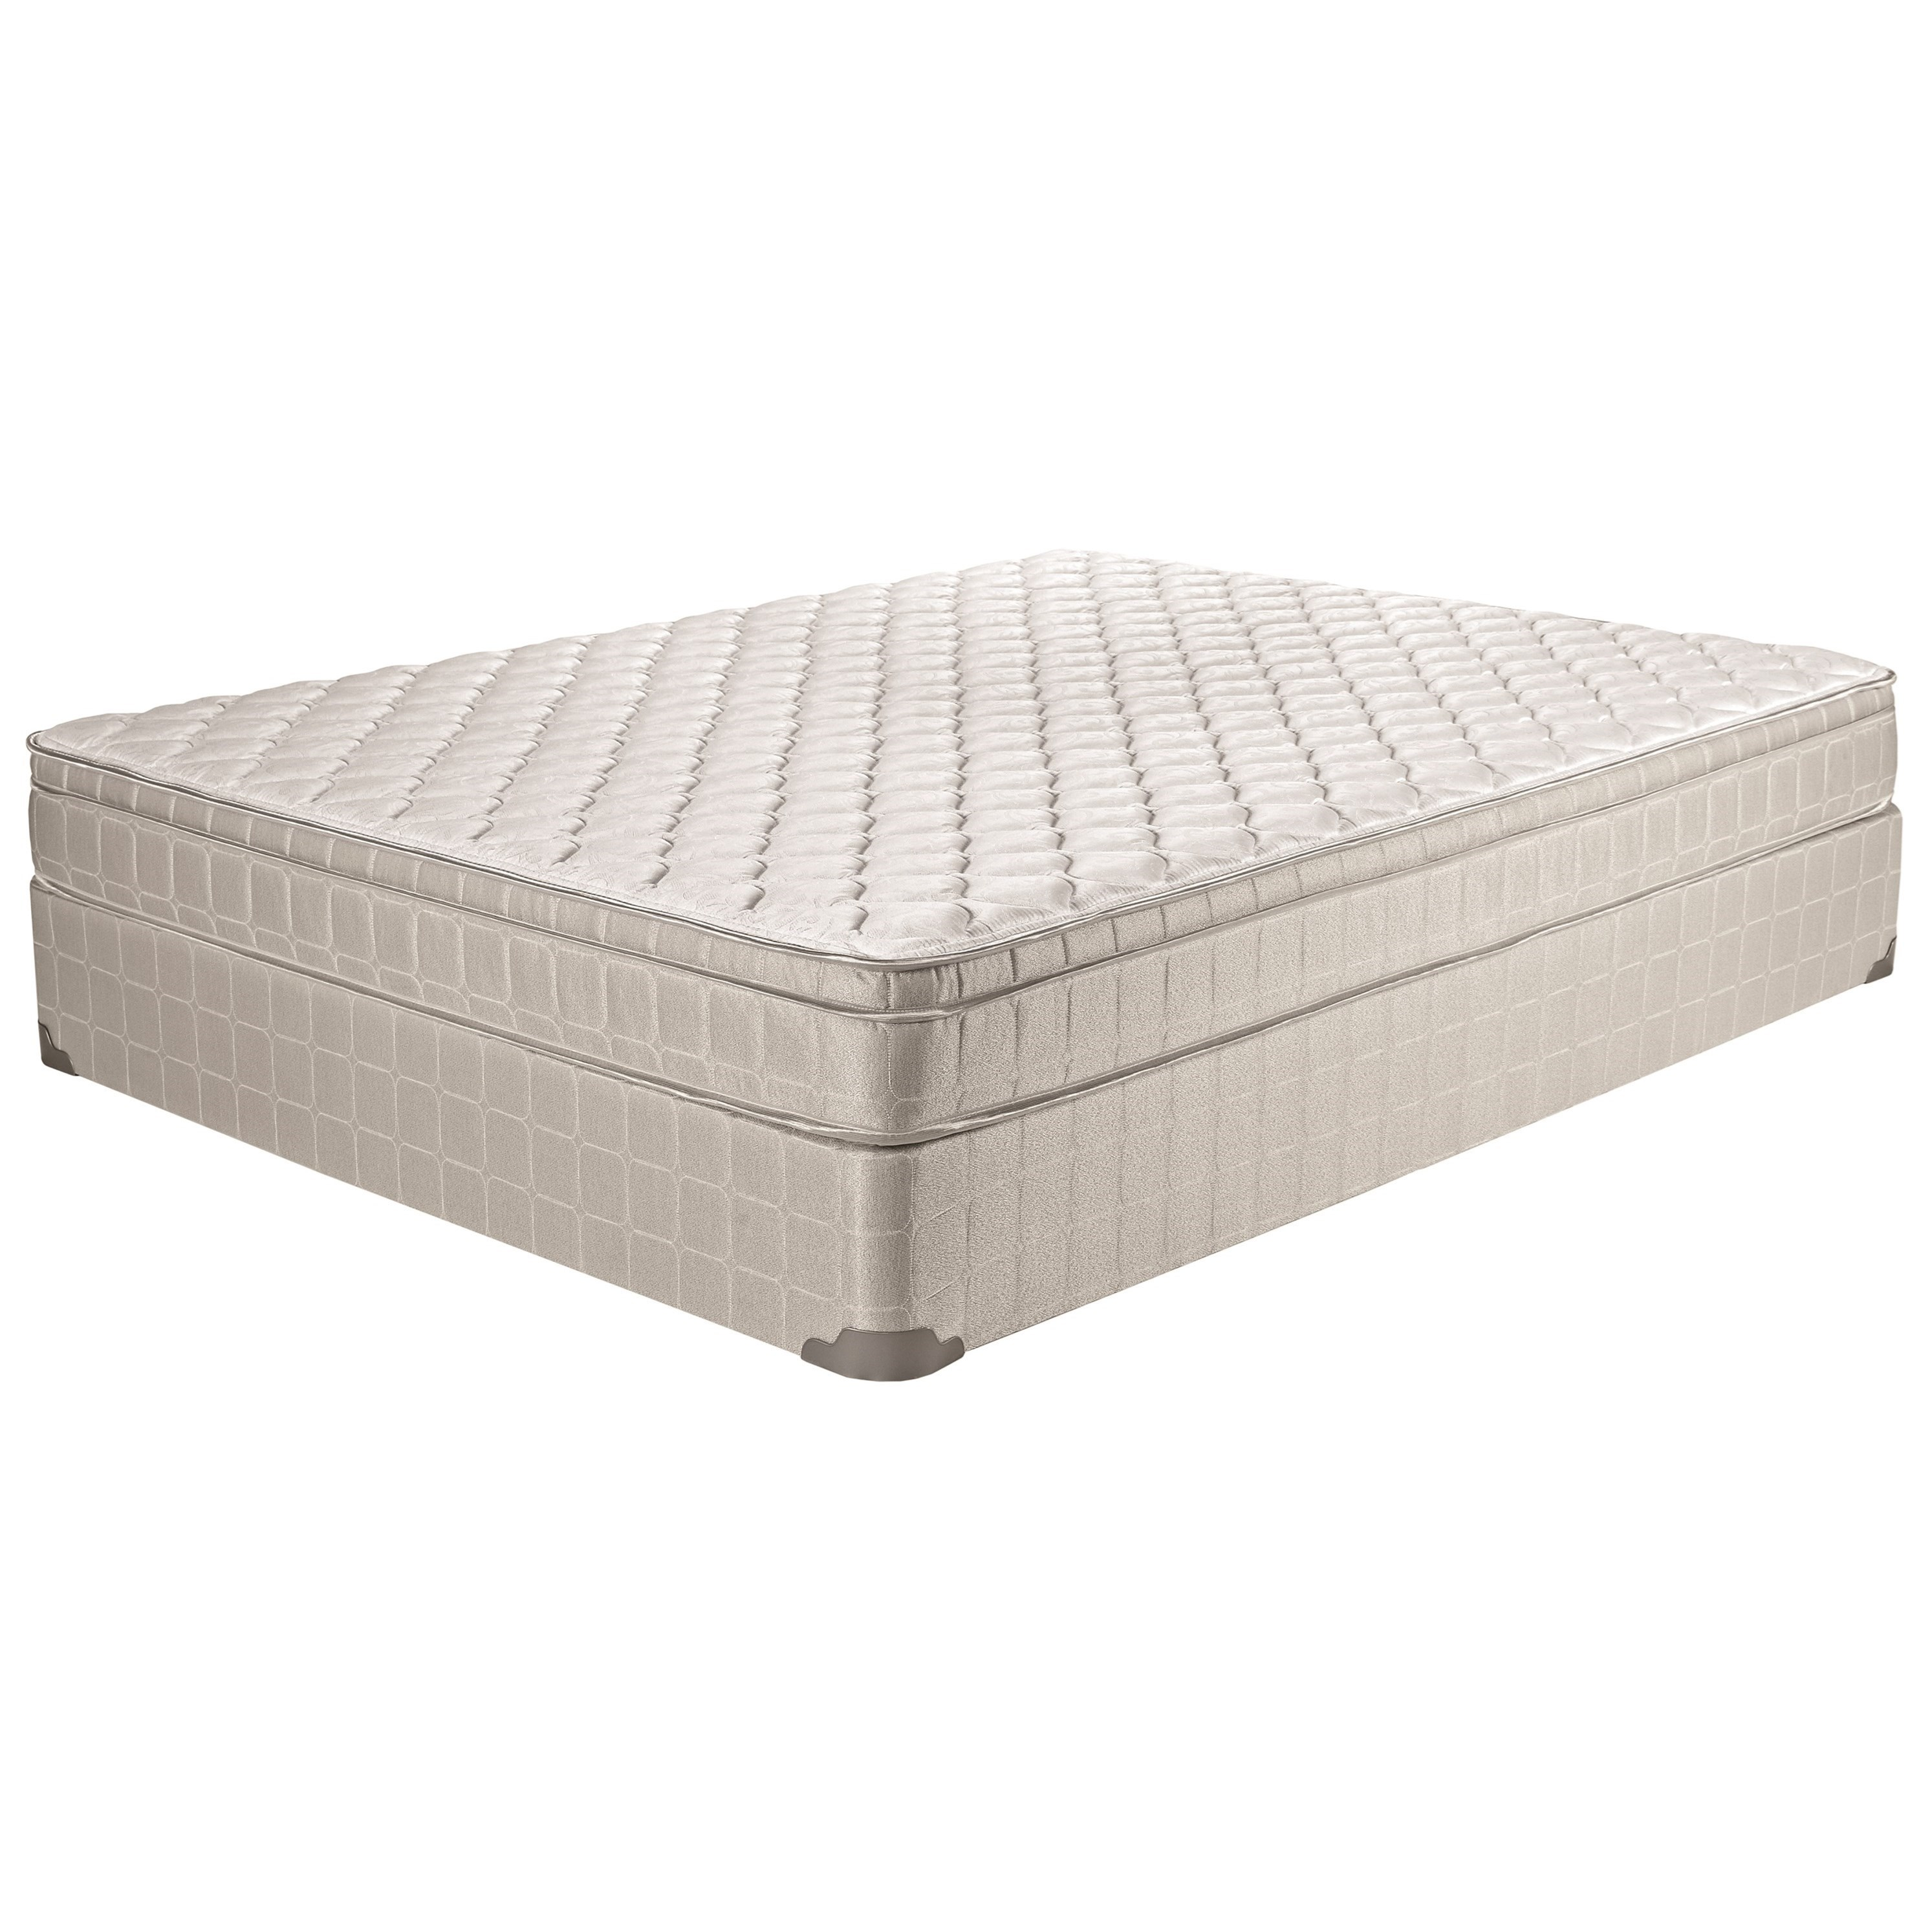 "Coaster Laguna II Euro Top Full 8 1/2"" Innerspring Euro Top Mattress - Item Number: 350053F"